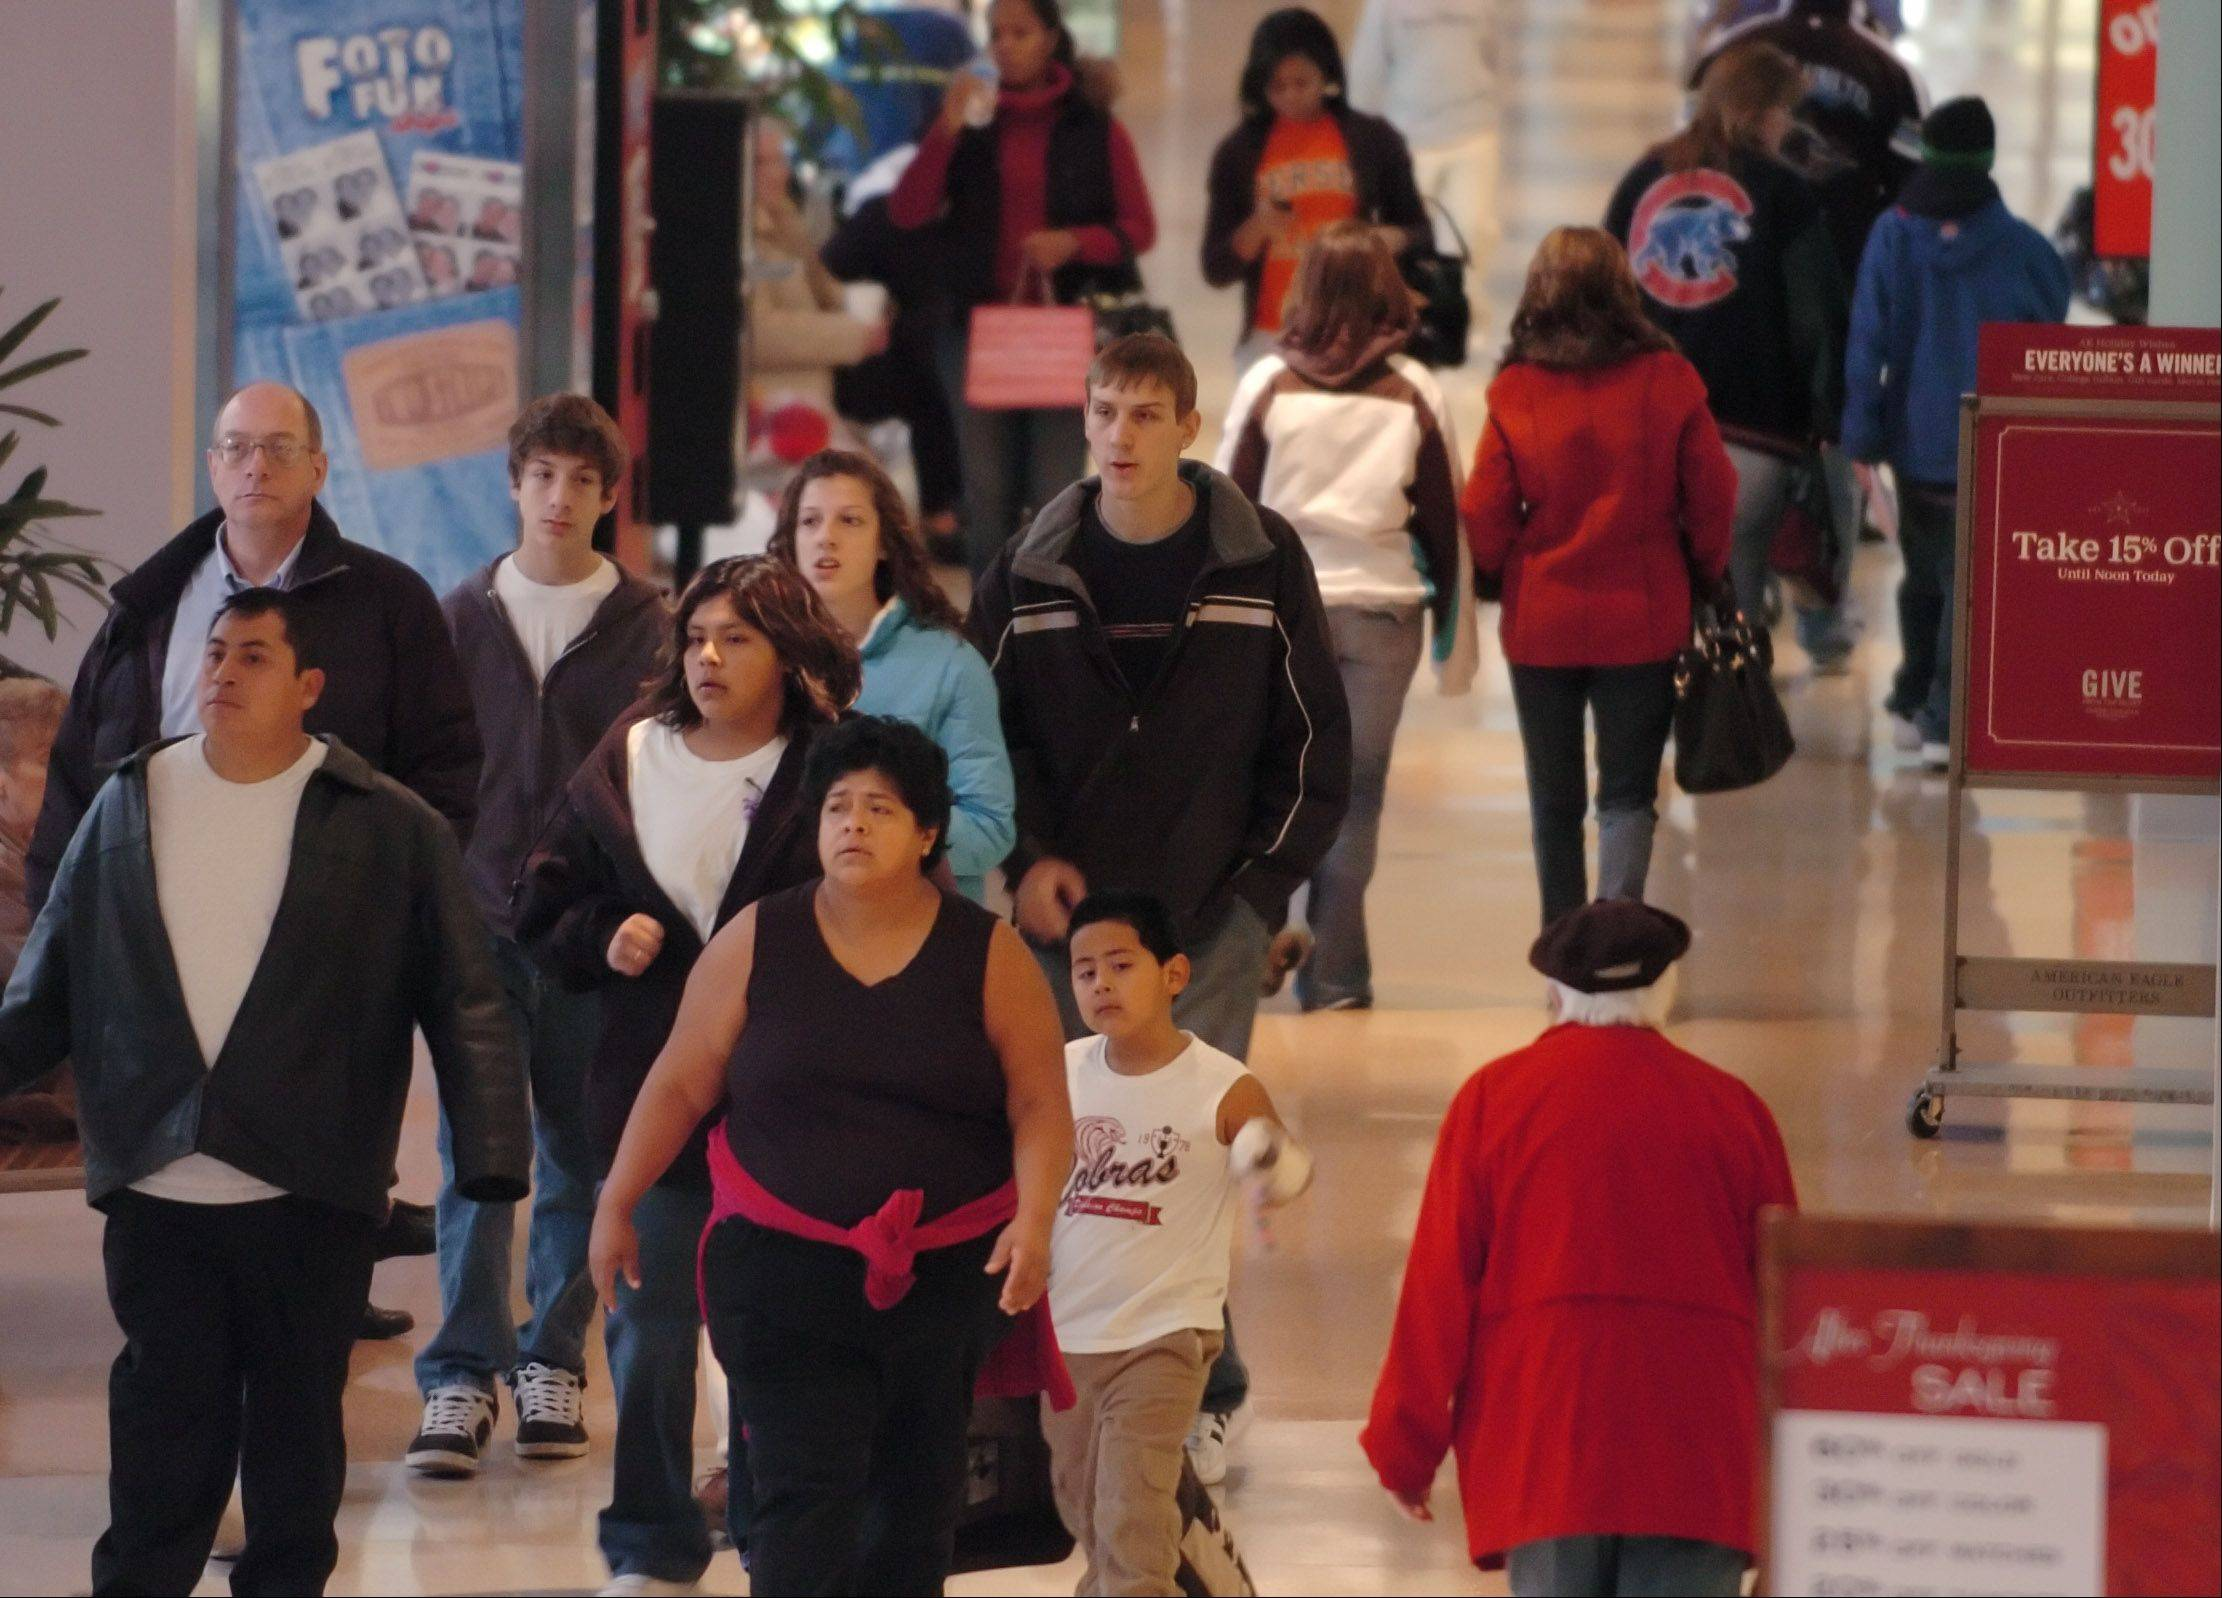 Americans are expected to spend more during what's traditionally the busiest shopping season of the year, but they're not exactly ready to shop `til they drop like they have been in the past two years.